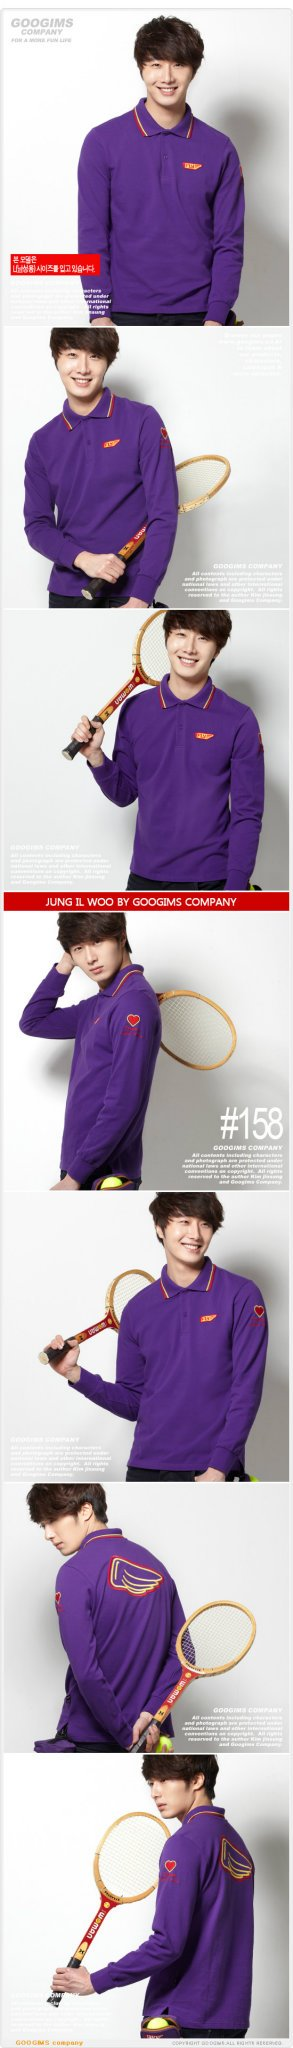 2011 10 Jung II-woo for Googims. Part 100008